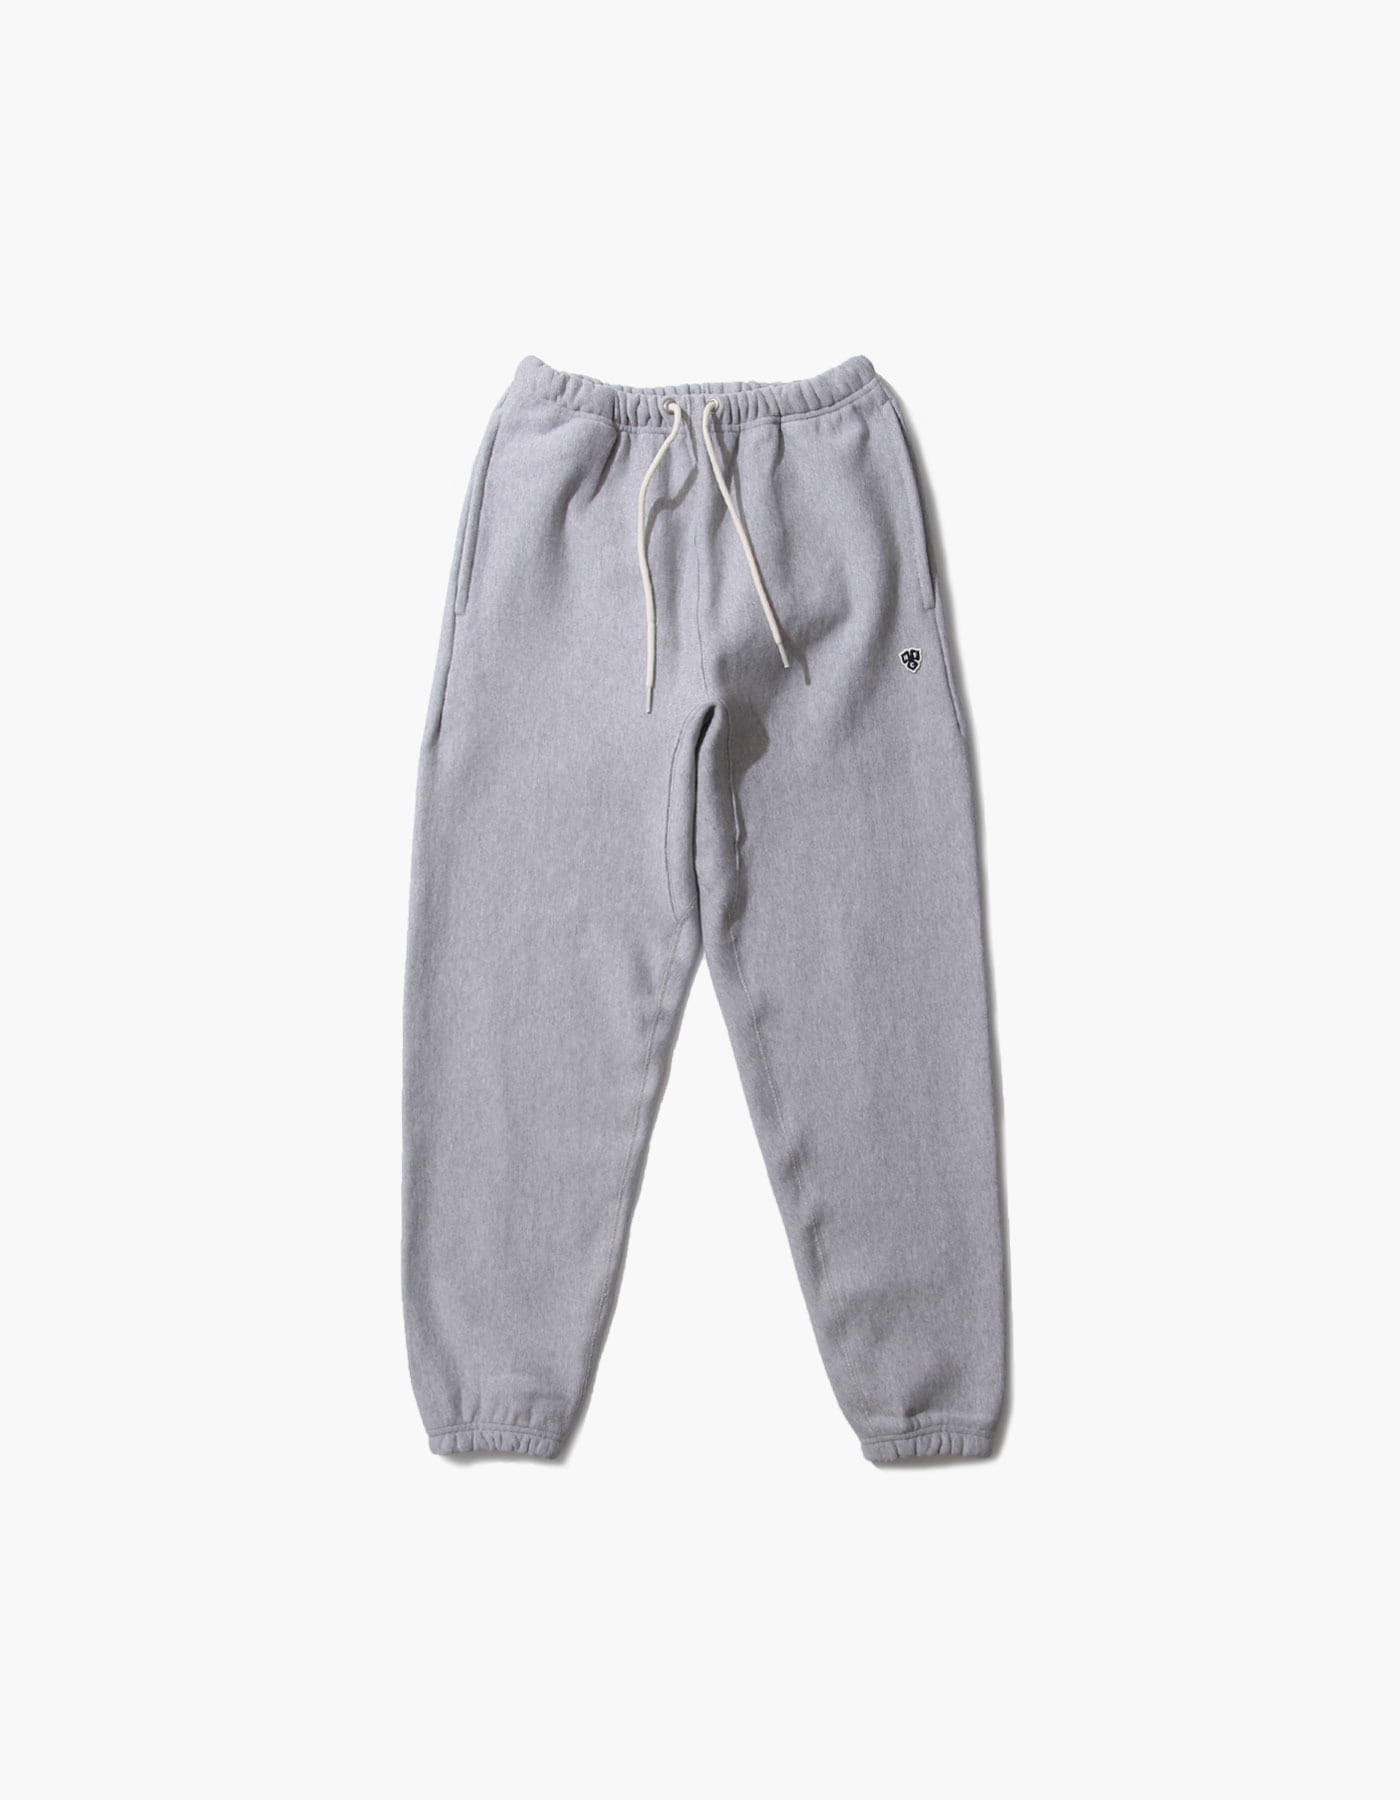 321 GYM SWEATPANTS / M.GREY(5%)